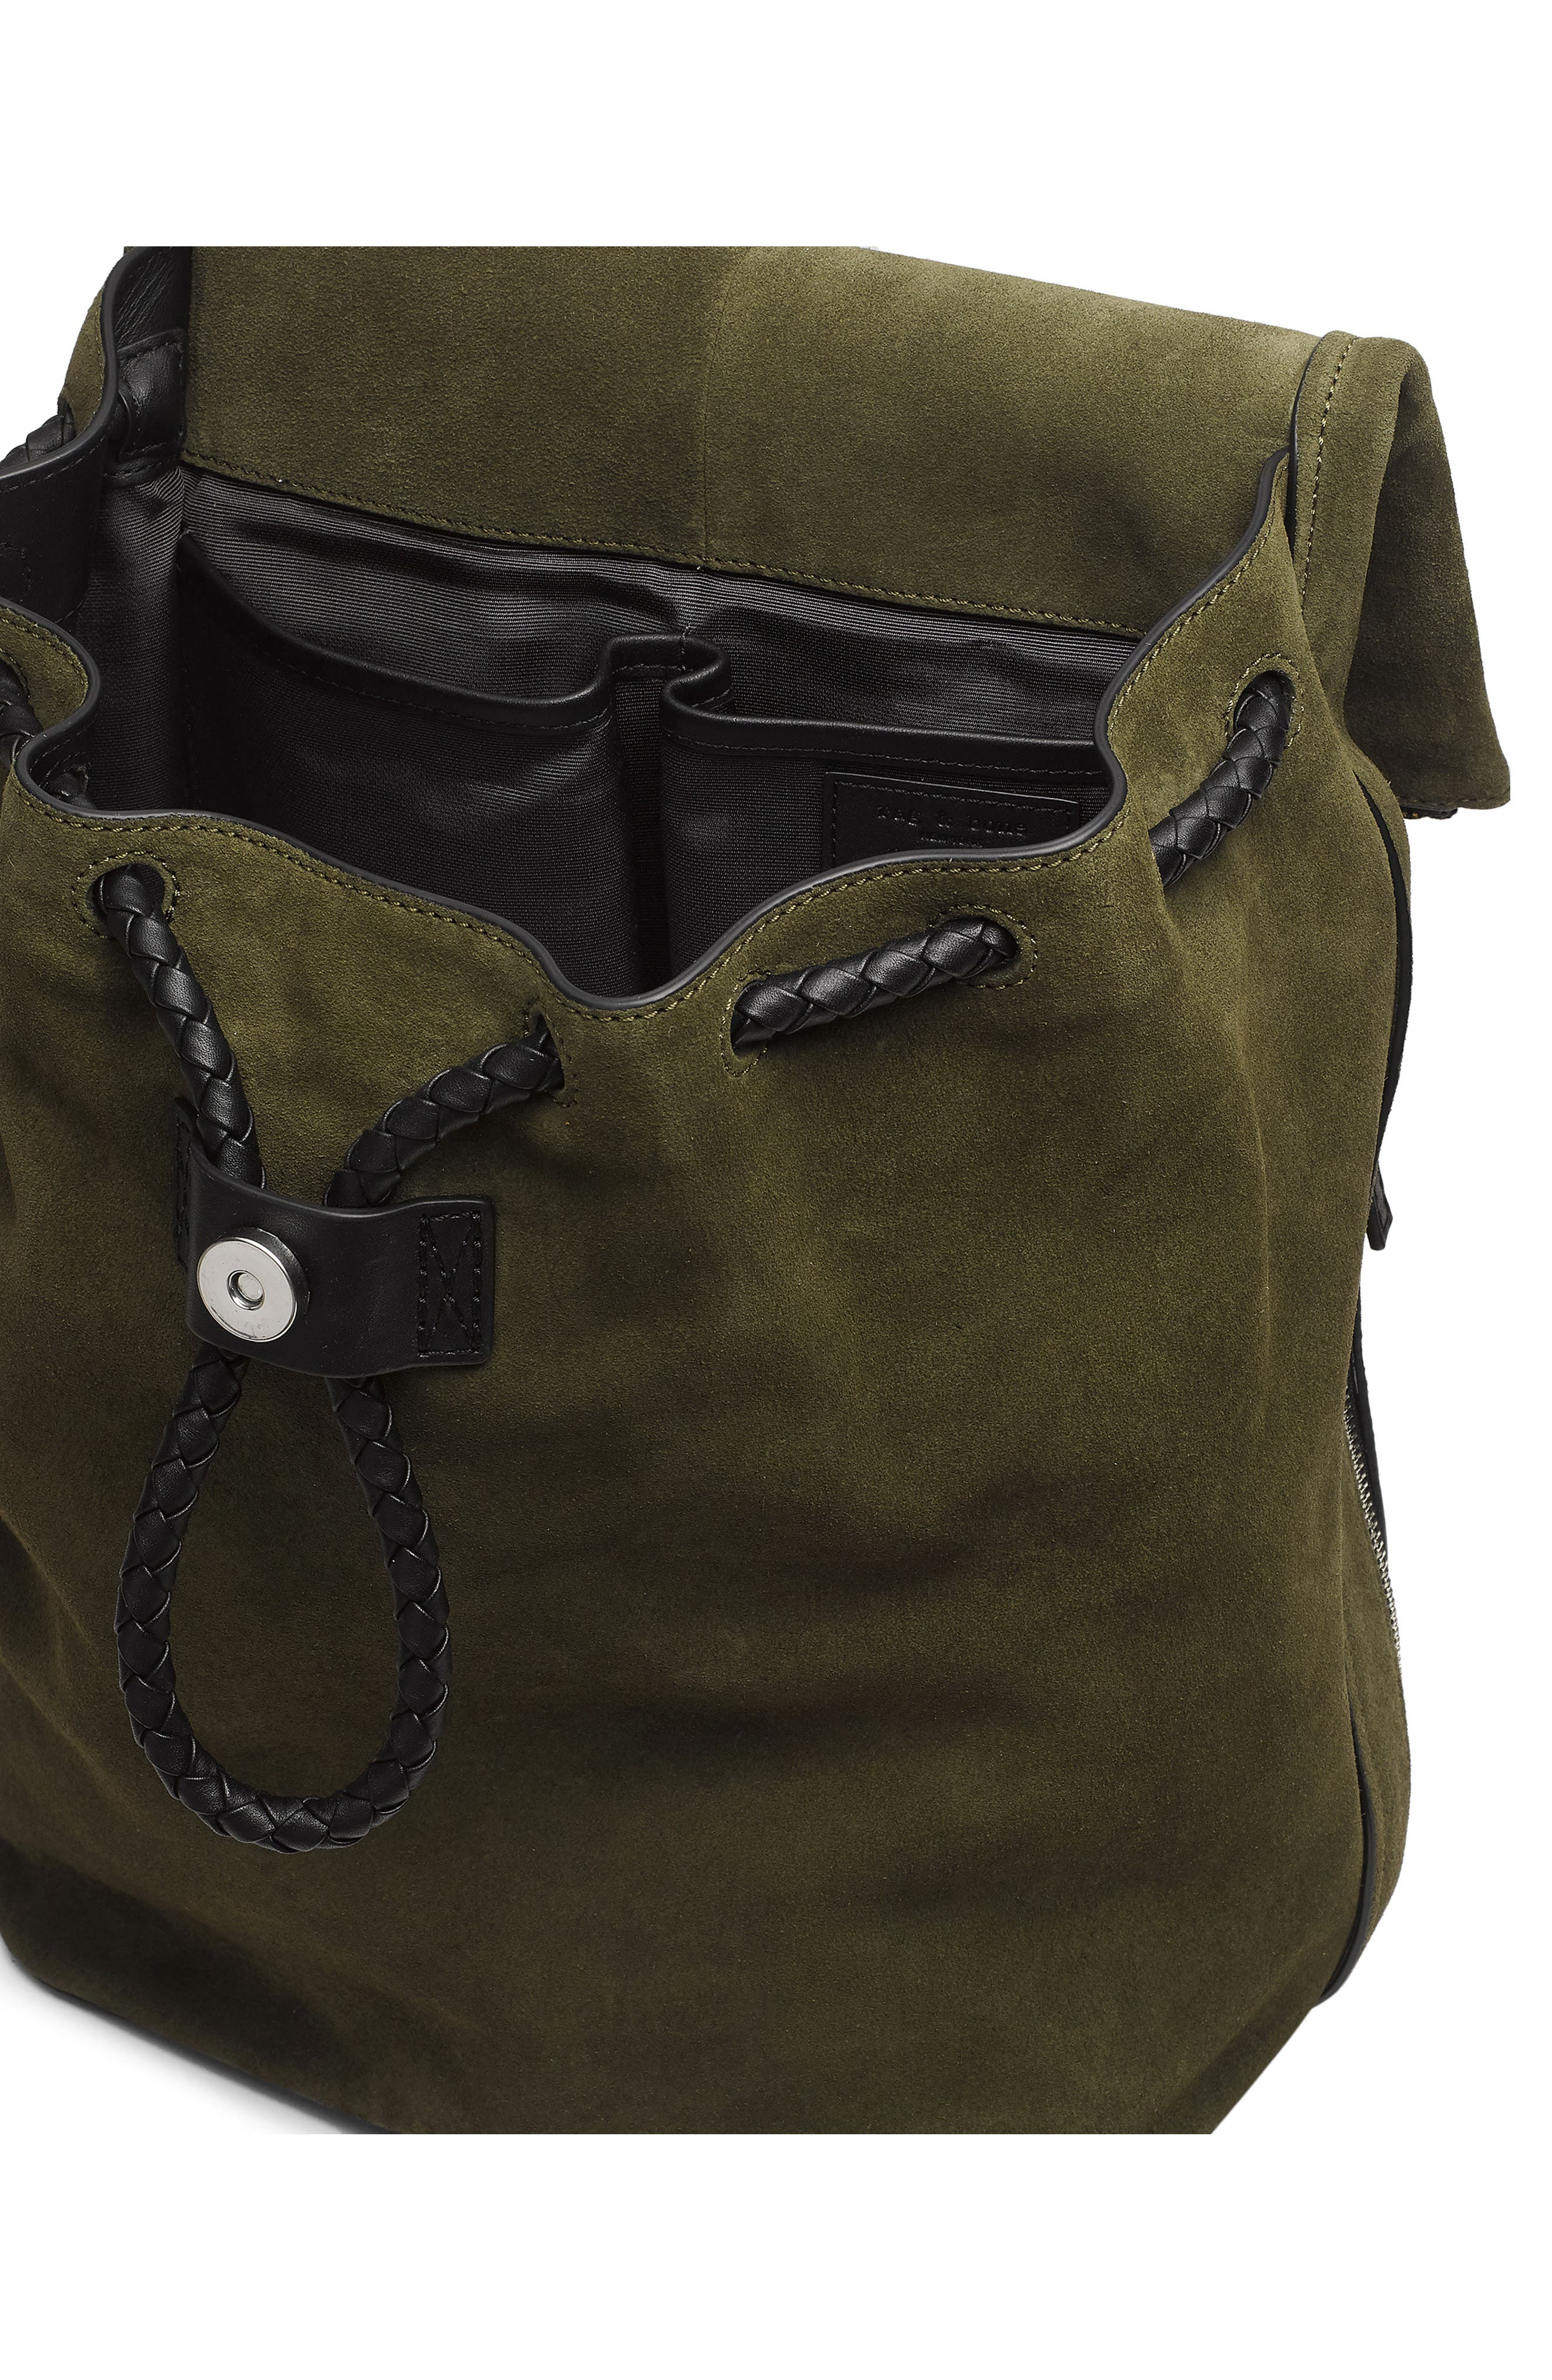 Loner Leather Backpack,                             Alternate thumbnail 4, color,                             OLIVE NIGHT SUEDE